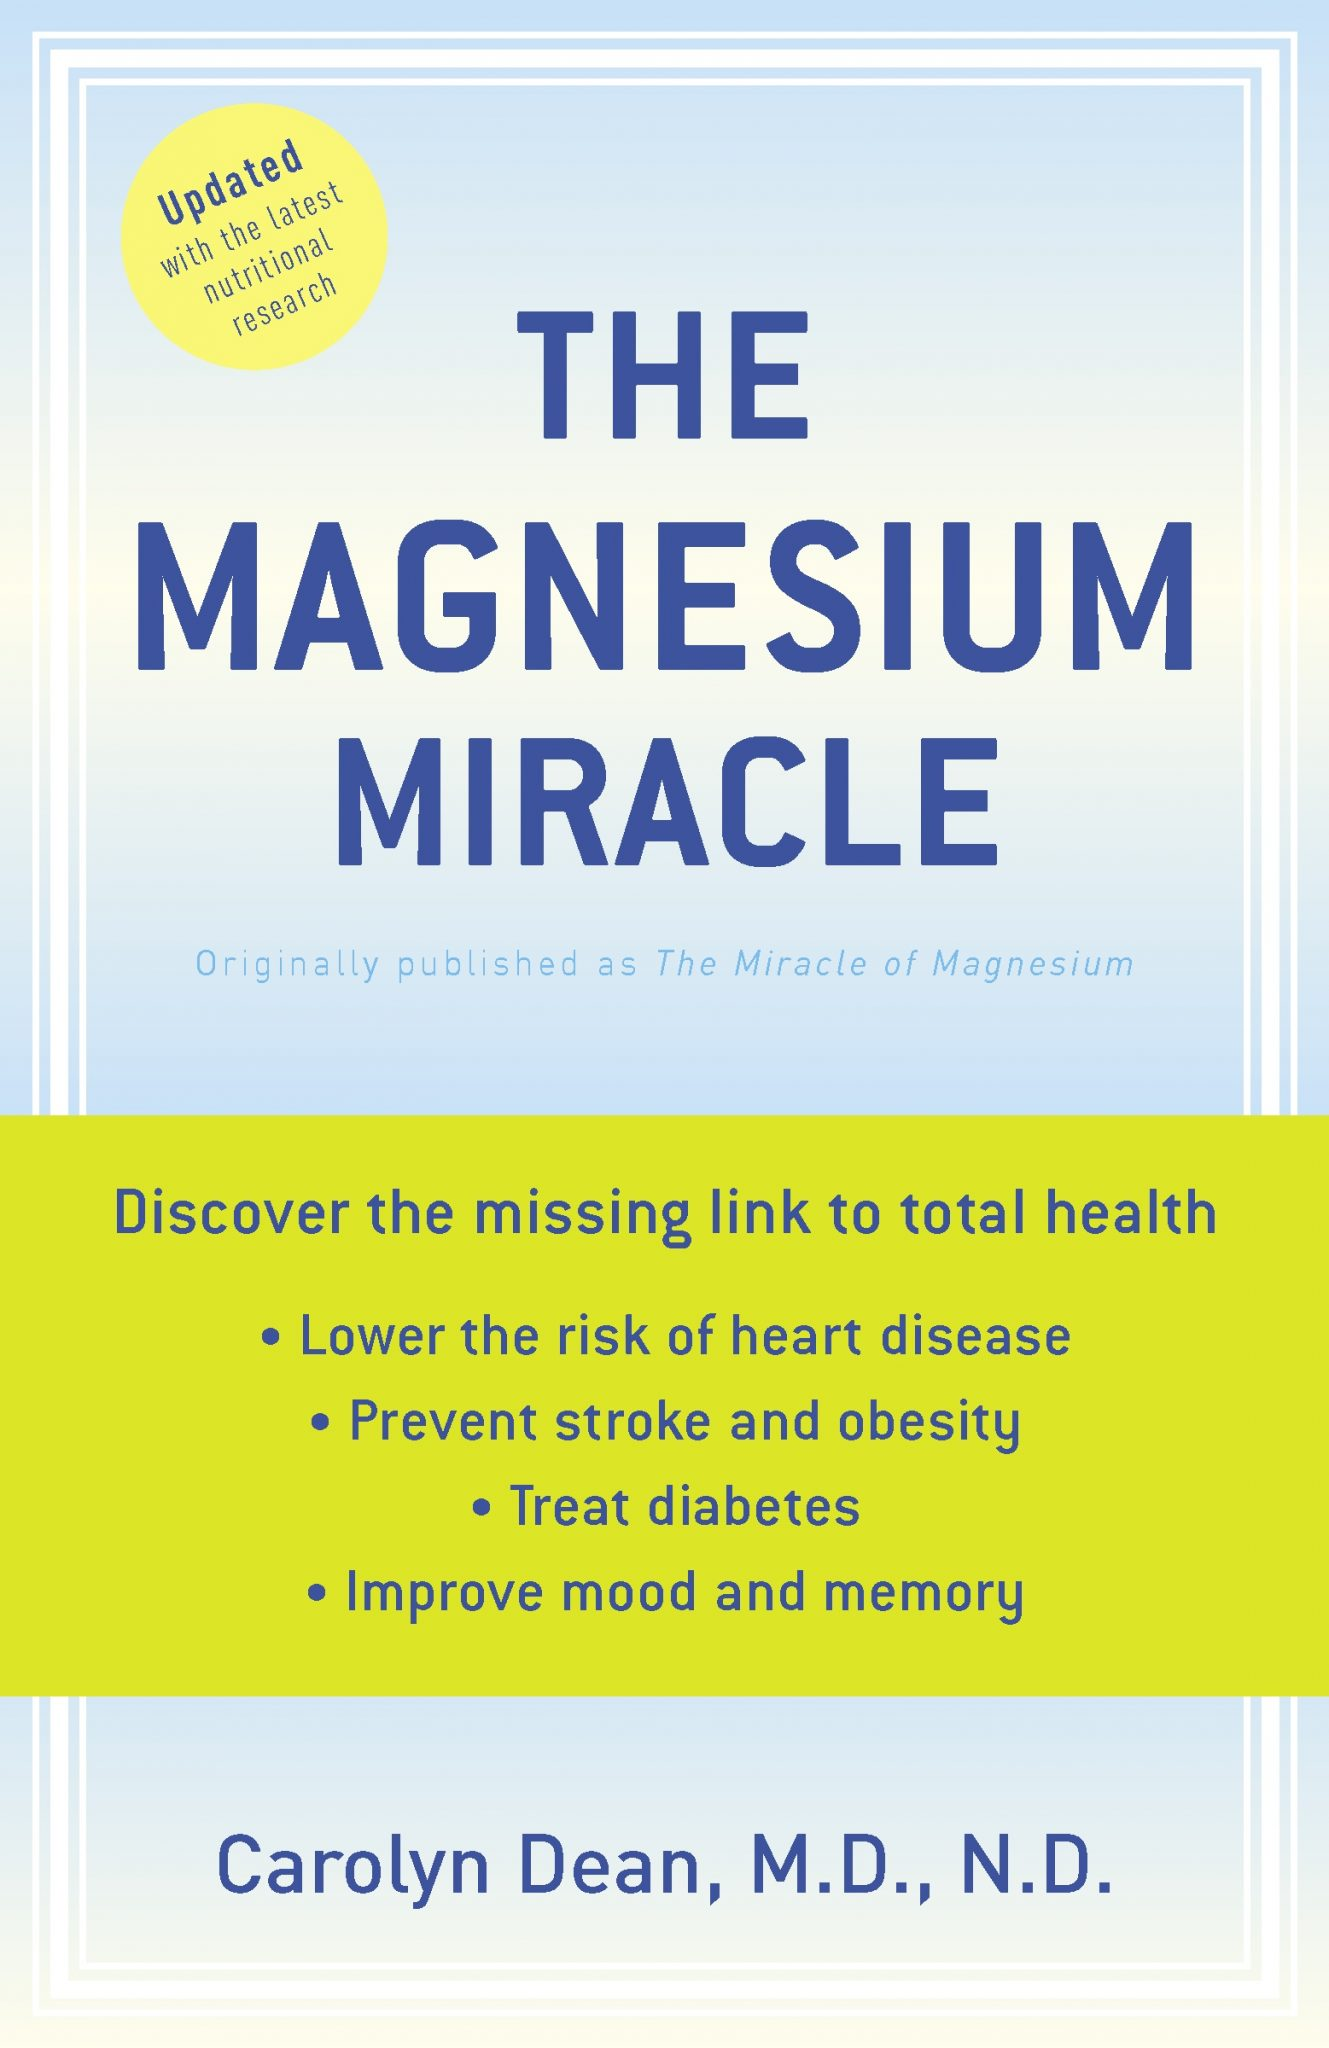 https://i1.wp.com/www.bengreenfieldfitness.com/wp-content/uploads/2009/07/MAGNESIUM-MIRACLE.cover.jpg